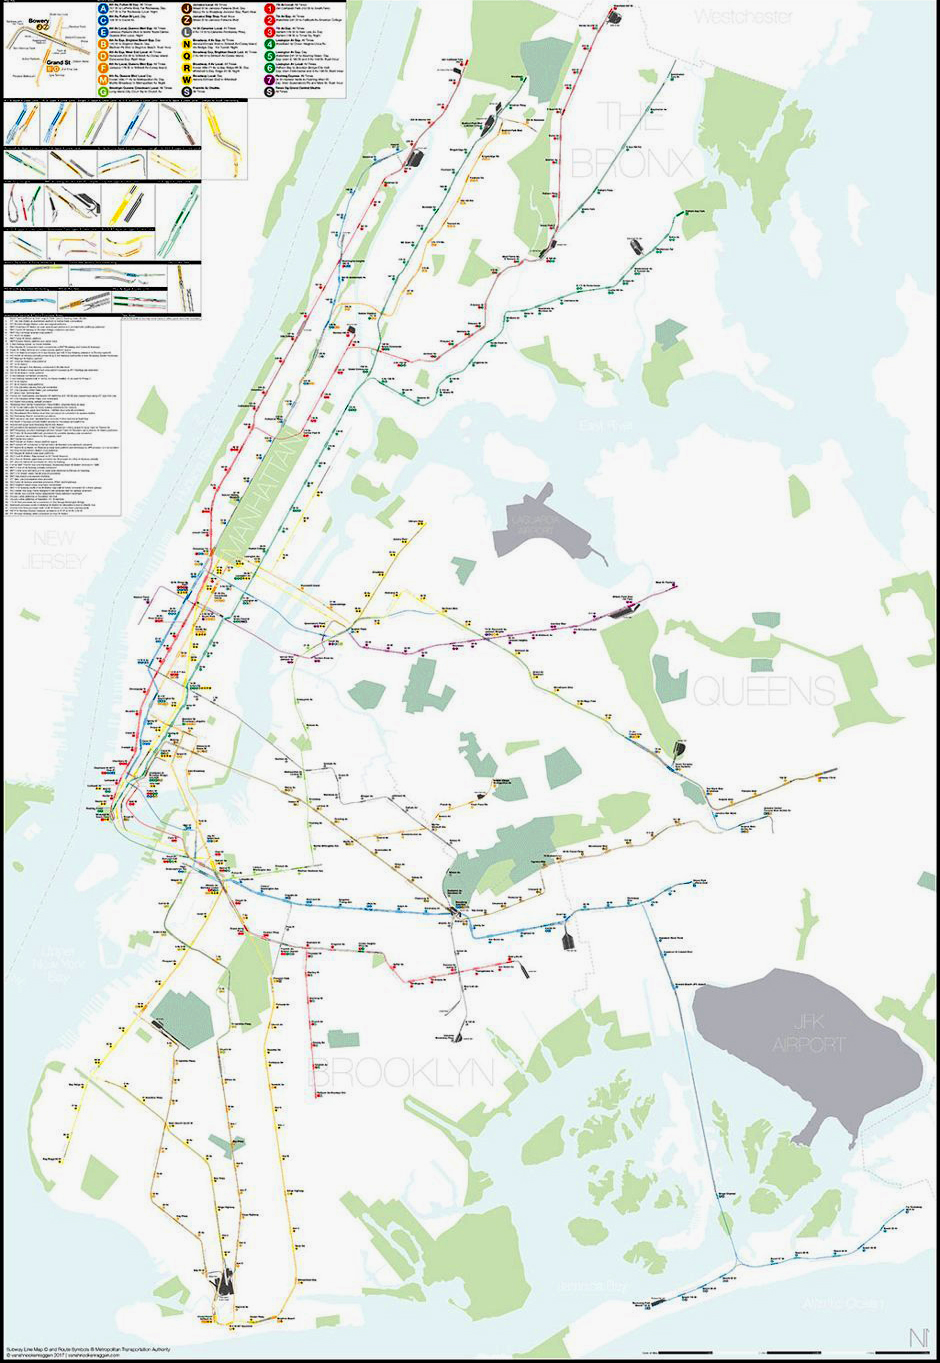 New York Subway Map Realistic.Just A Car Guy A Geographically Accurate New York City Subway Map